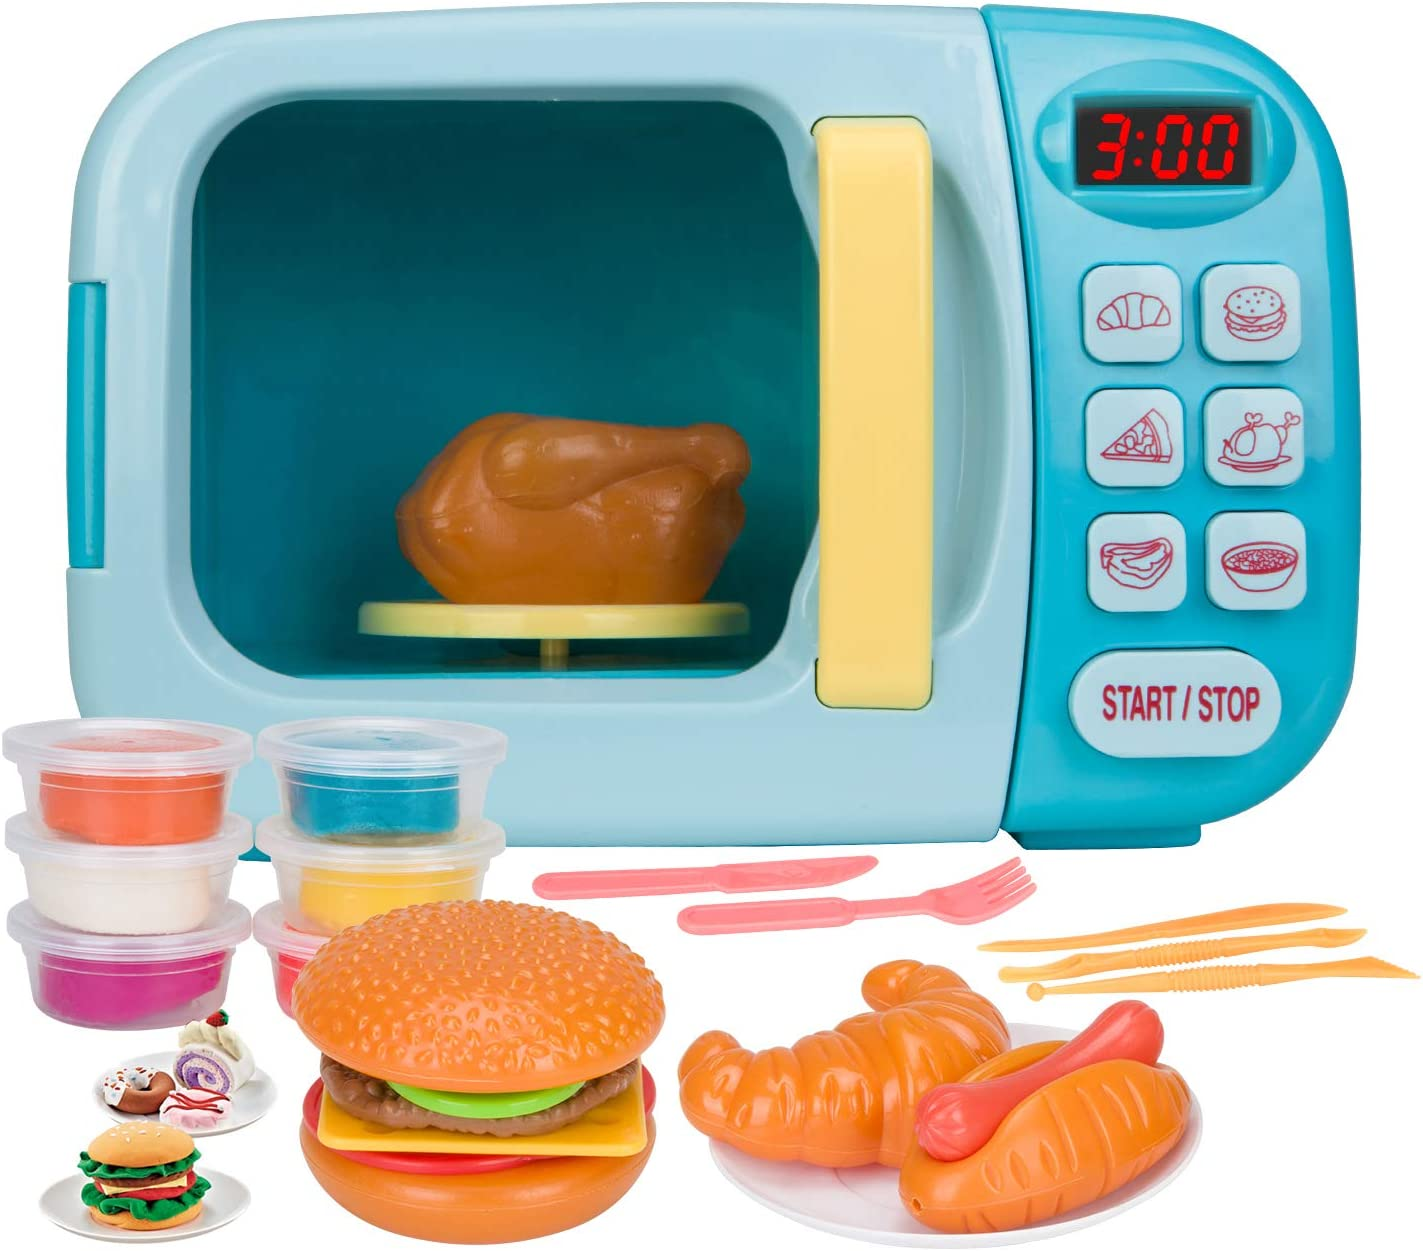 Vazussk Electronic Kitchen Toys Pretend Microwave Oven Play Set for Kids Toddlers Age 3 and up with 6Pcs Play Dough (Blue)